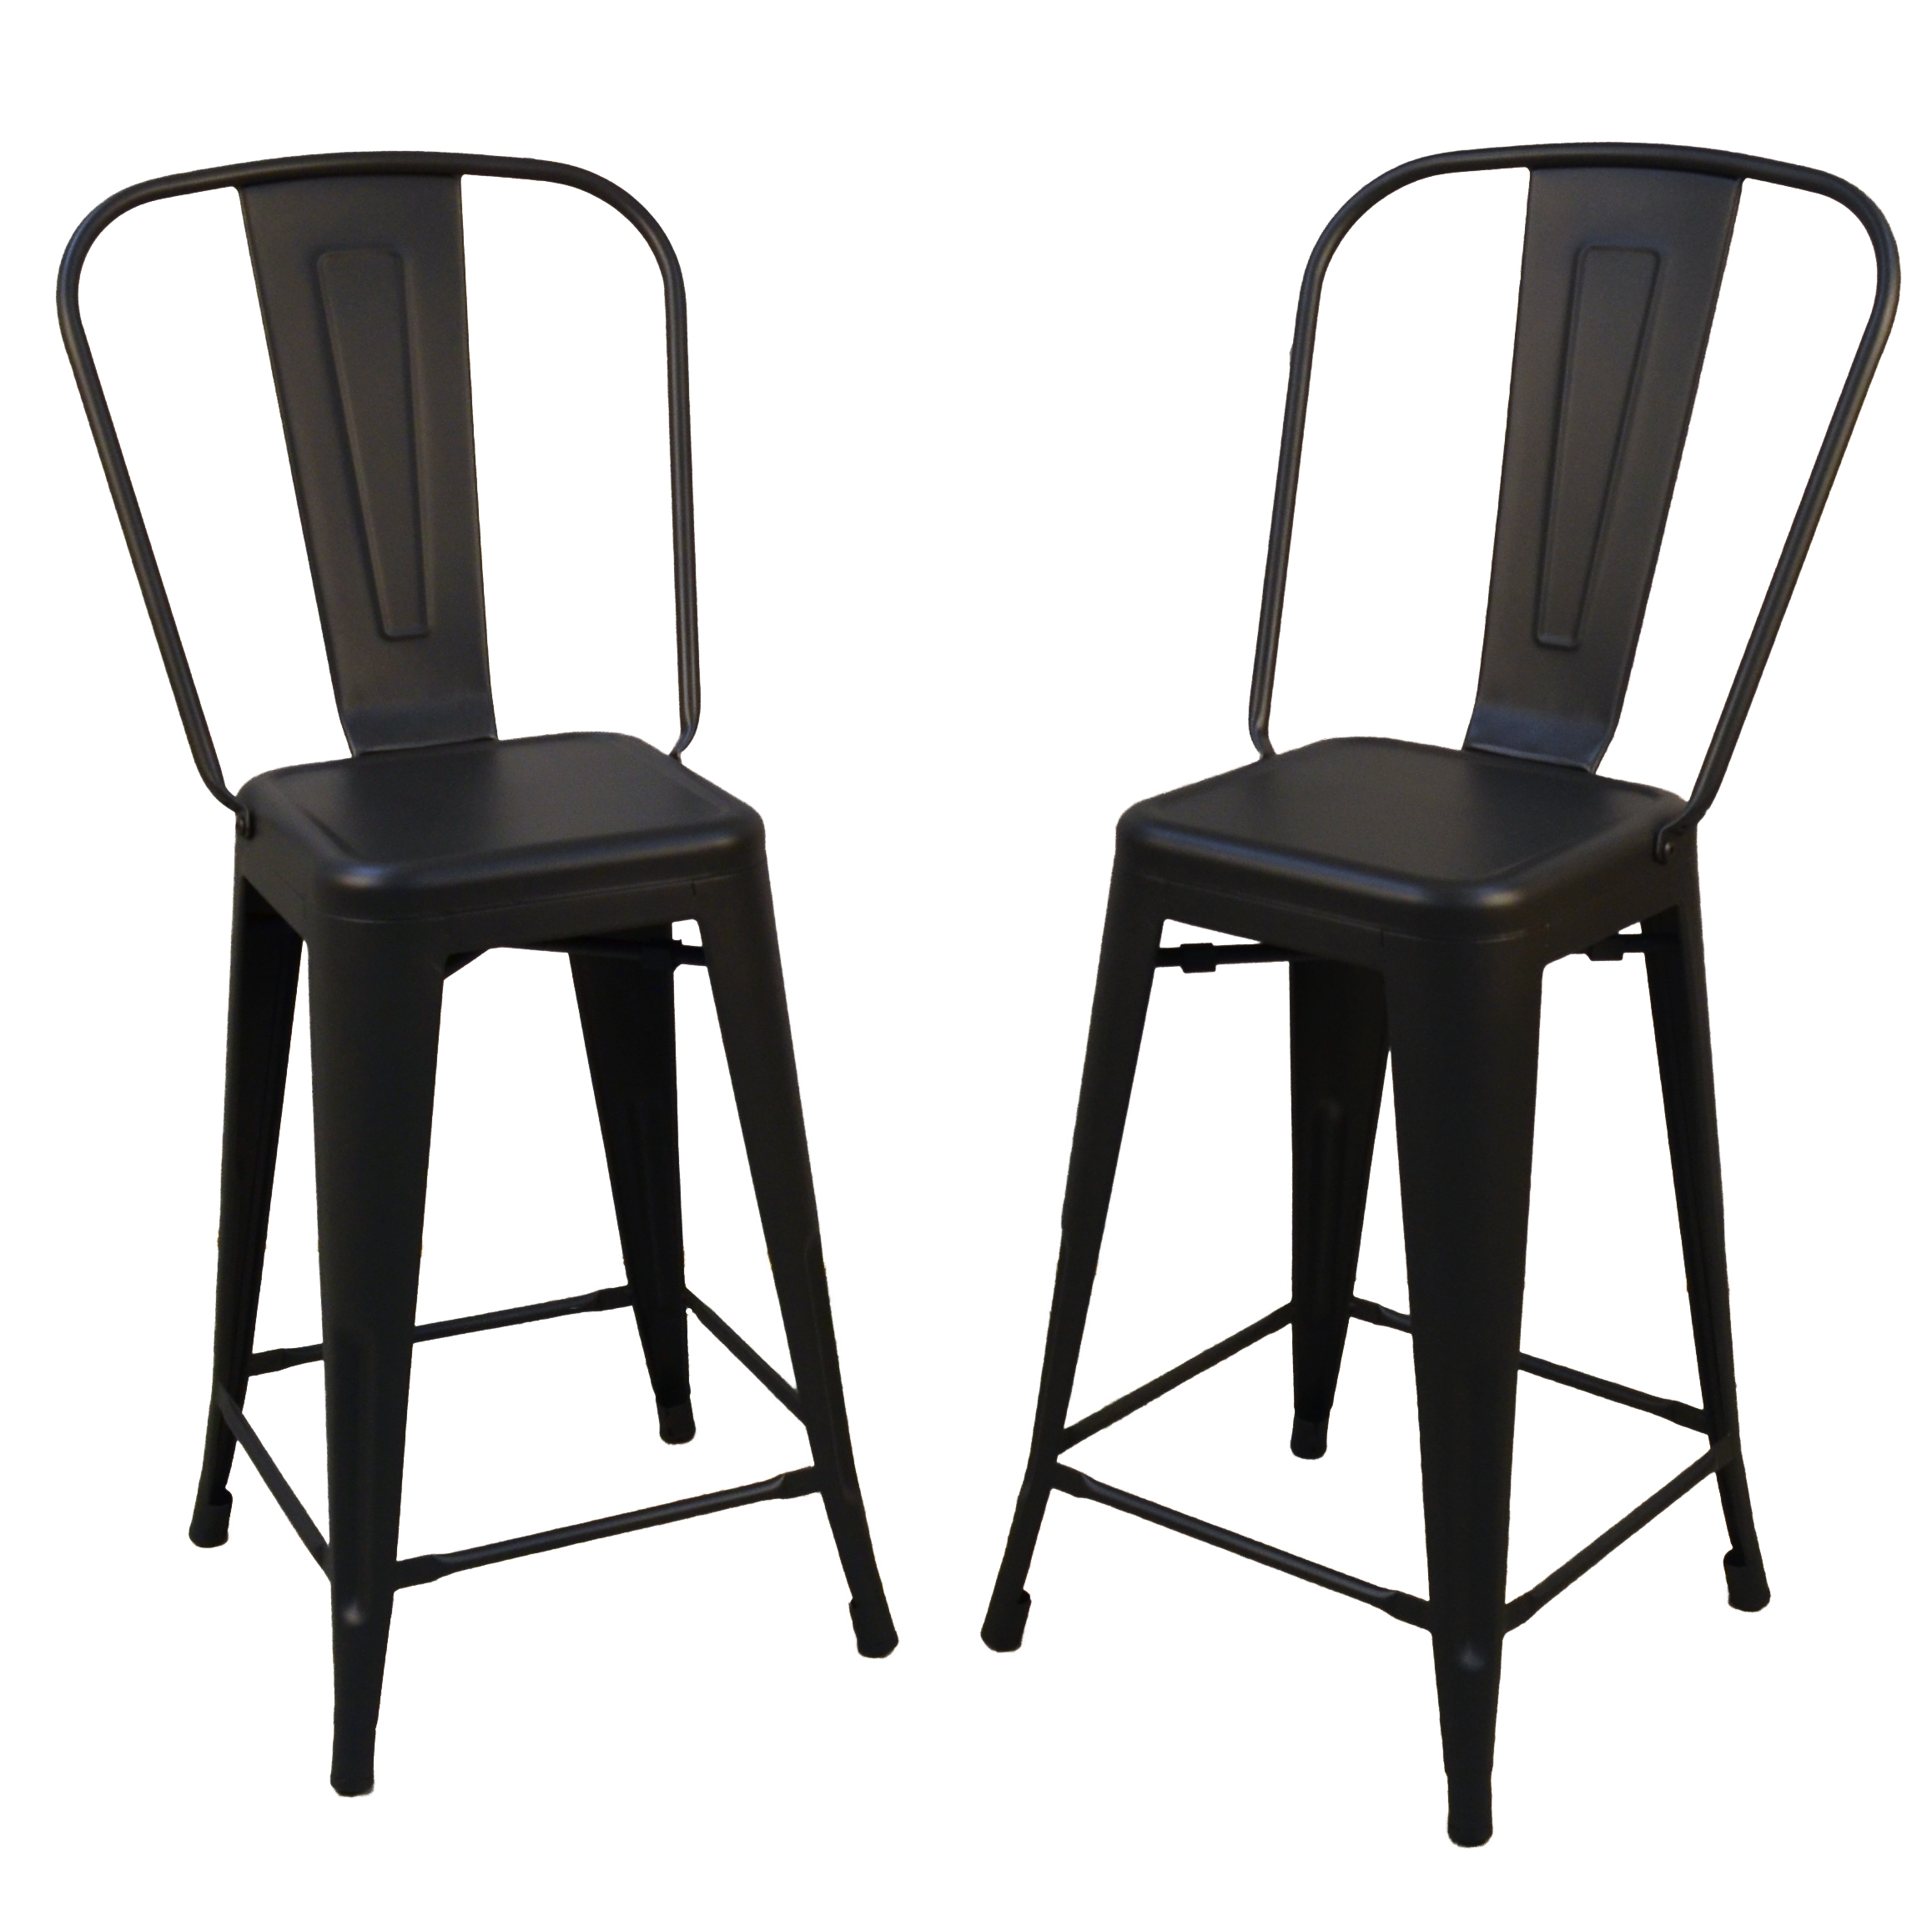 "Adeline 24"" Counter Stool Set of 2, Black"